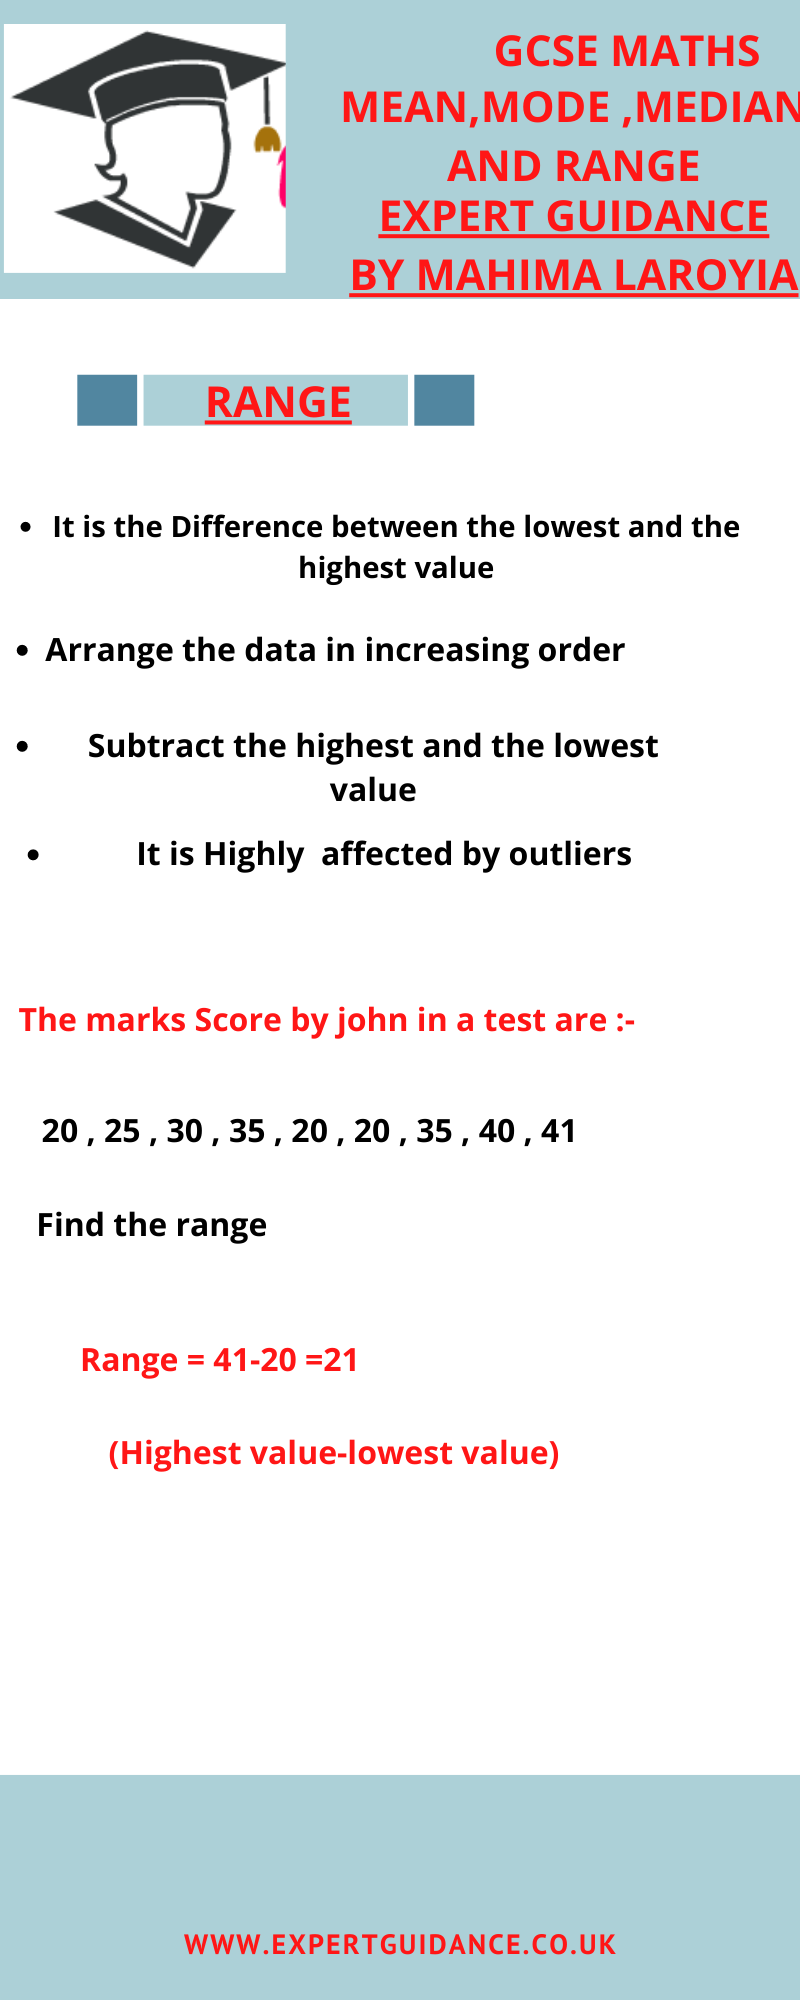 topic meaning by Expert Guidance by Mahima Laroyia  Online Maths and Science Tutor